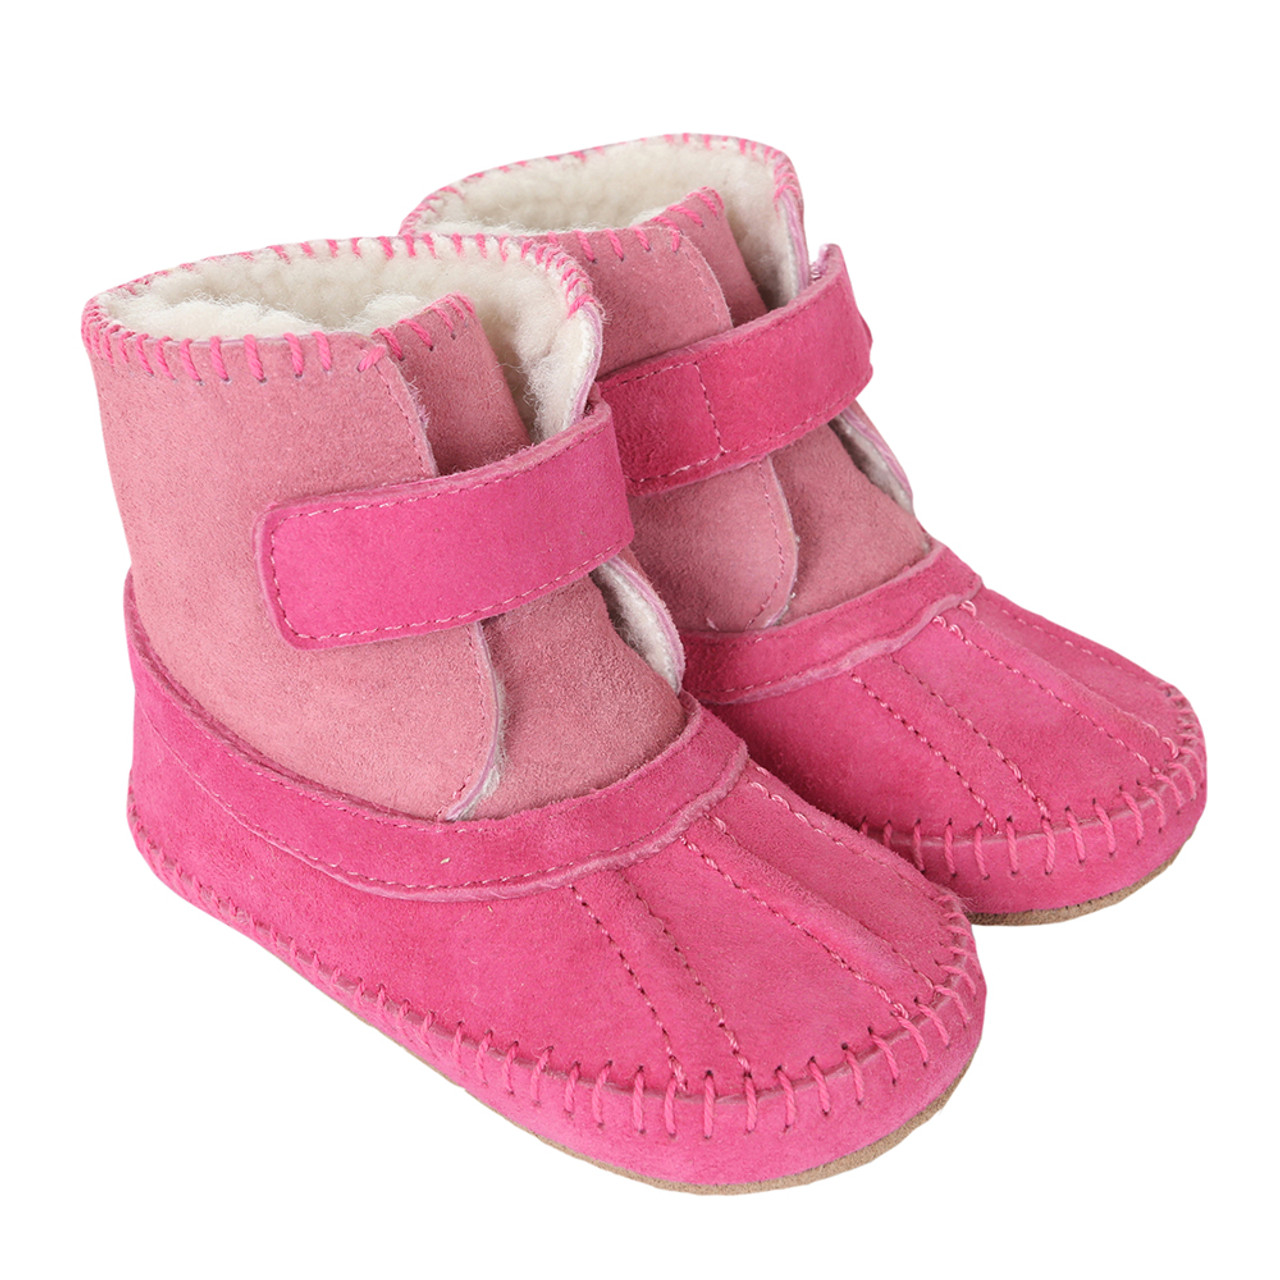 4a2e53b3b75 Robeez Galway Cozy Boots Pink Soft Soles